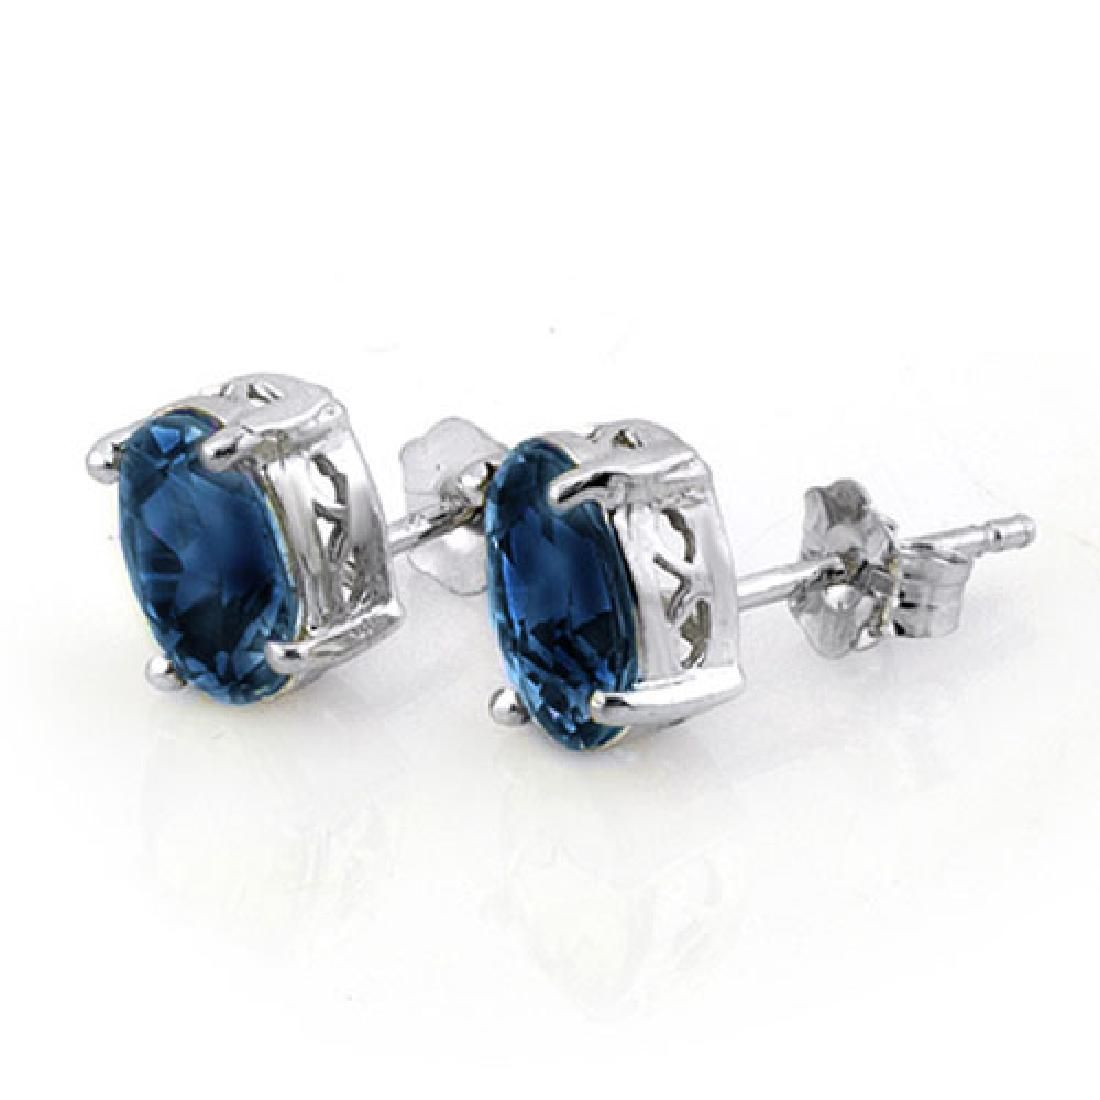 3.0 CTW Blue Sapphire Earrings 18K White Gold -